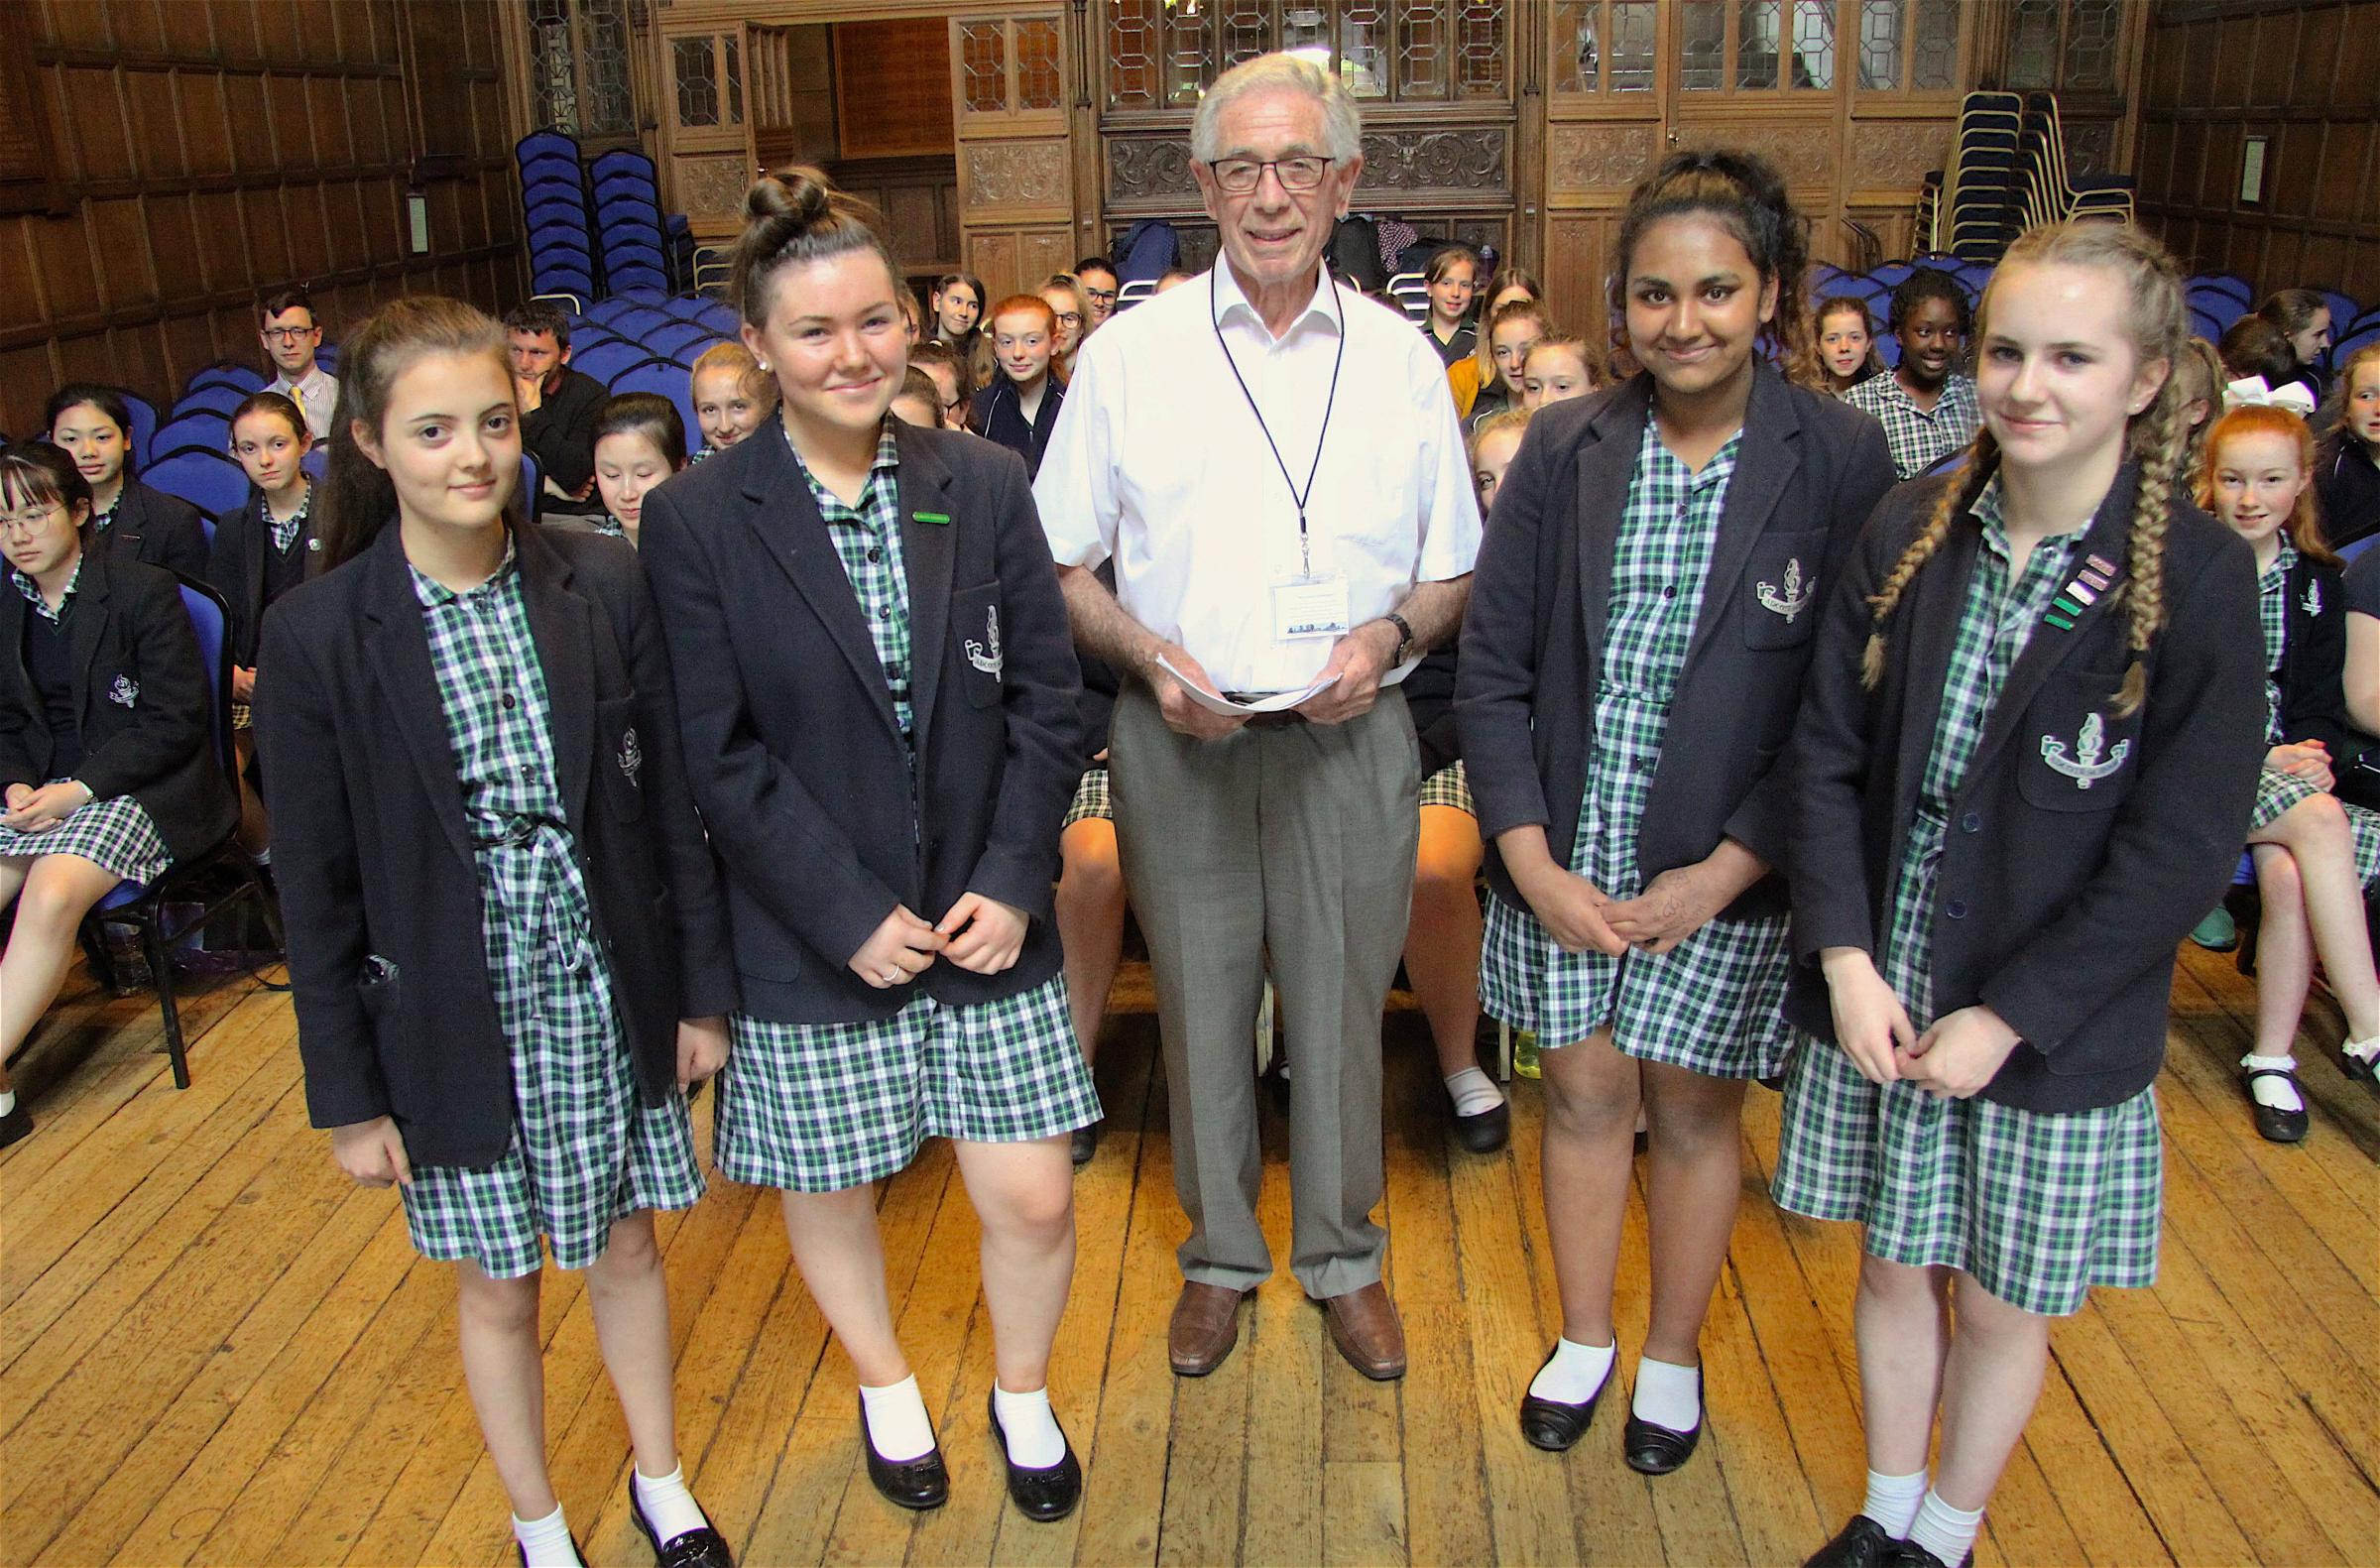 Holocaust survivor Ernest Simon with pupils from Adcote School.